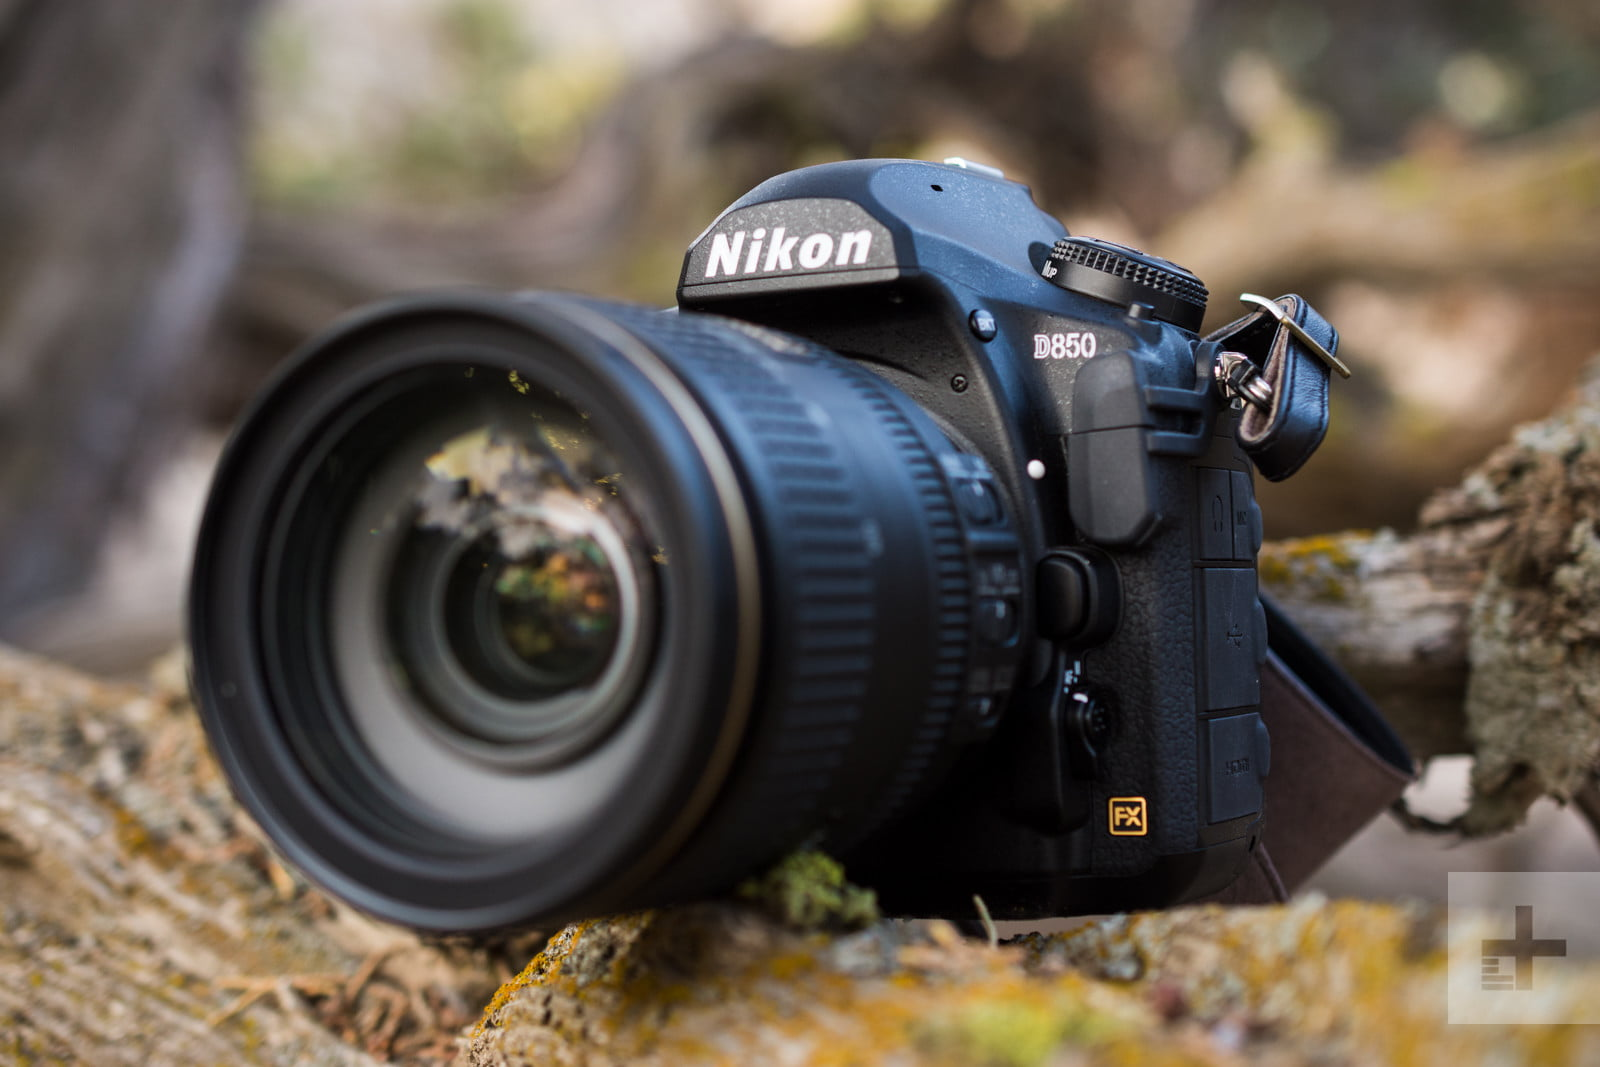 Nikon D850 Filmmaker's Kit Has the Gear You Need for Video